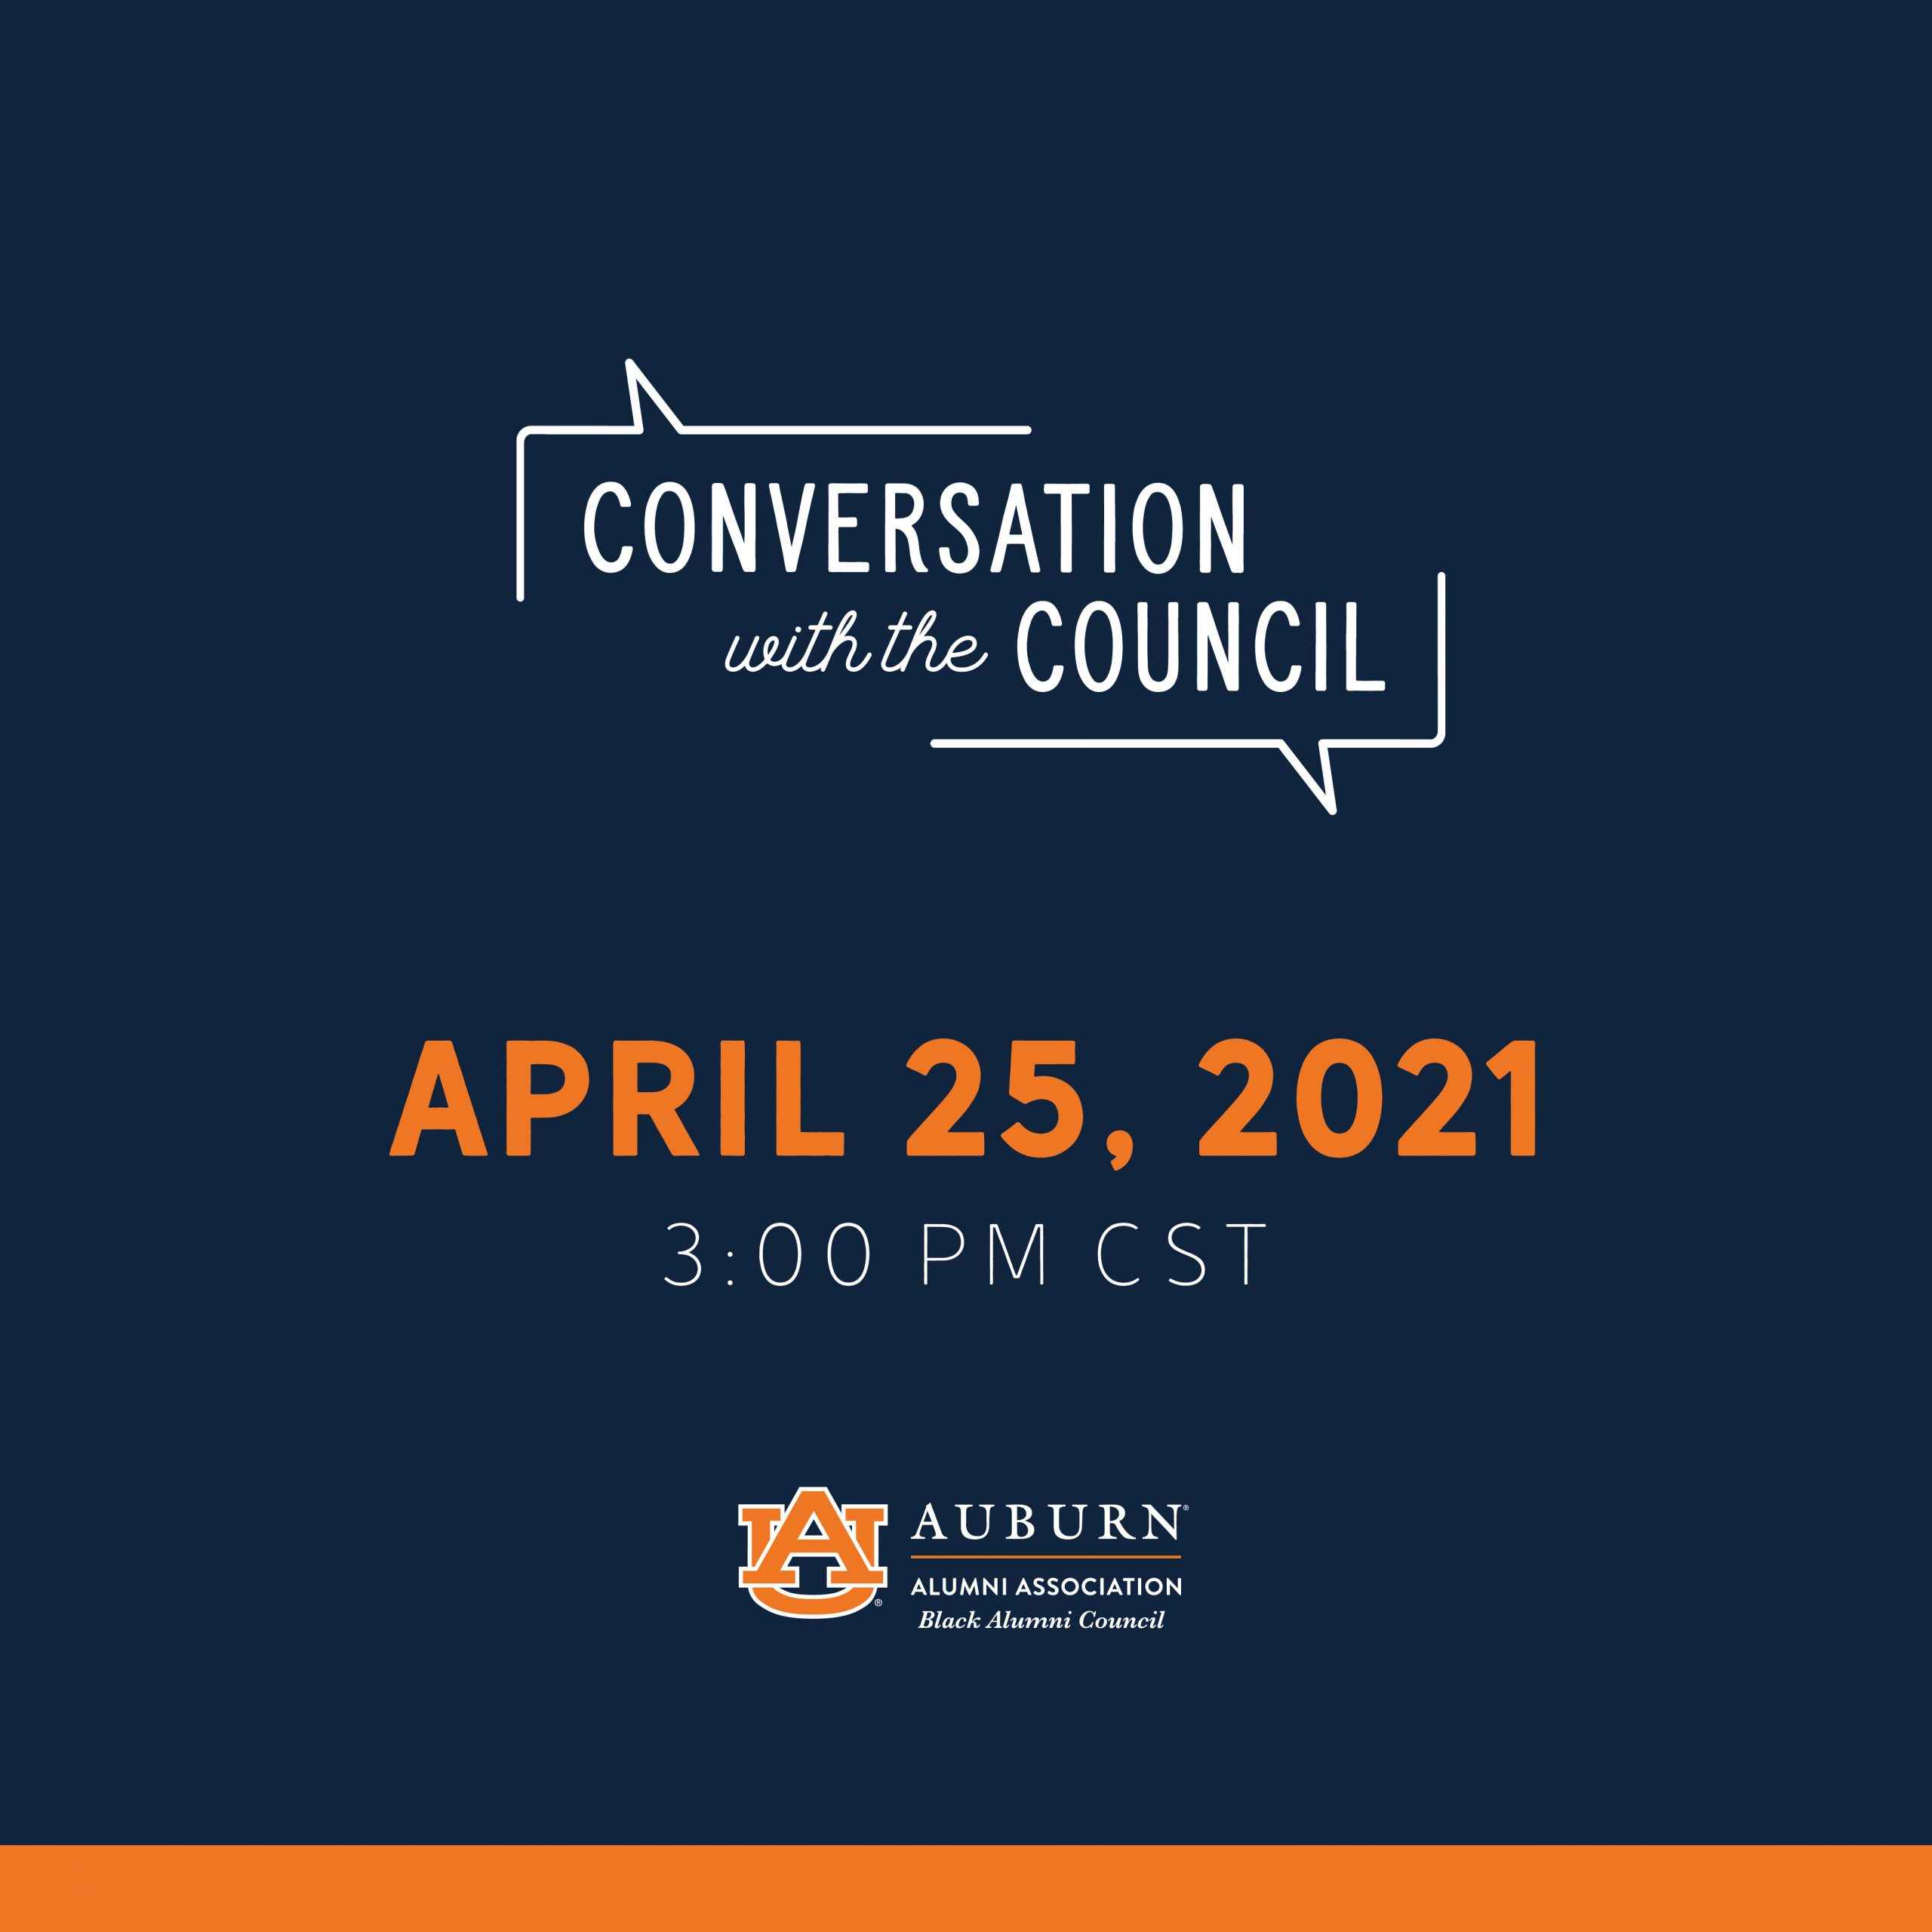 Conversation with Council graphic